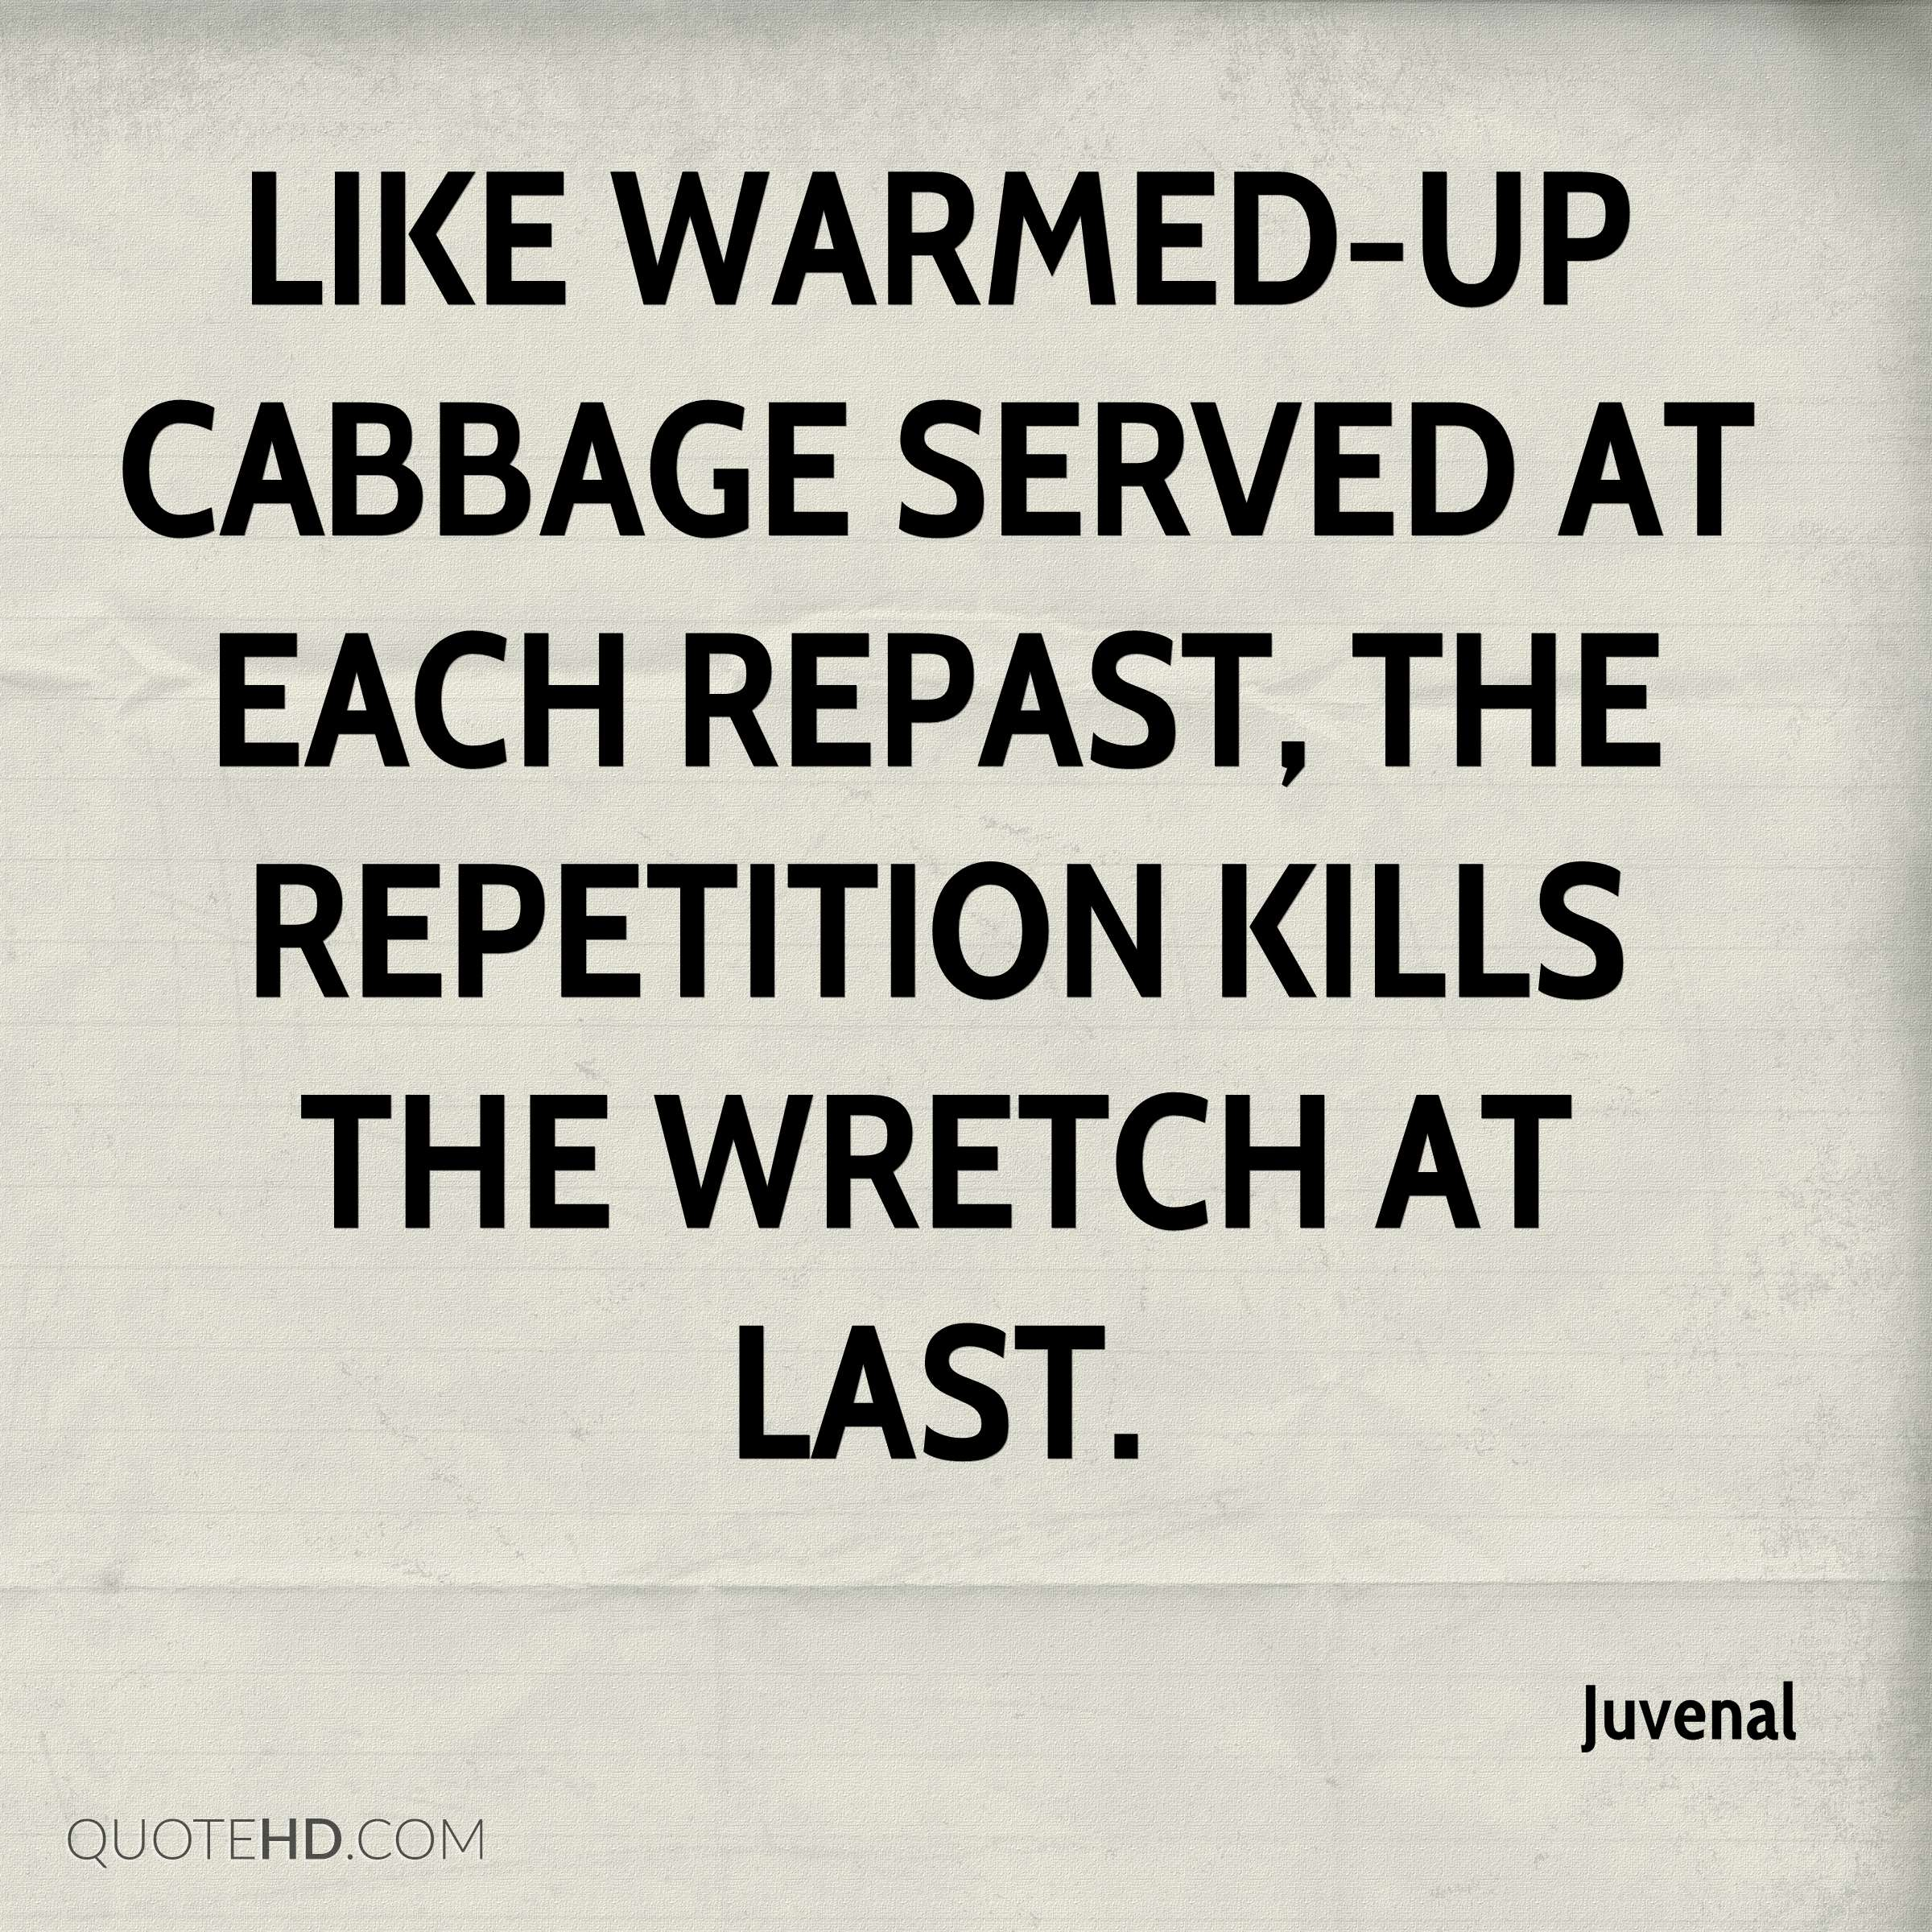 Like warmed-up cabbage served at each repast, The repetition kills the wretch at last.